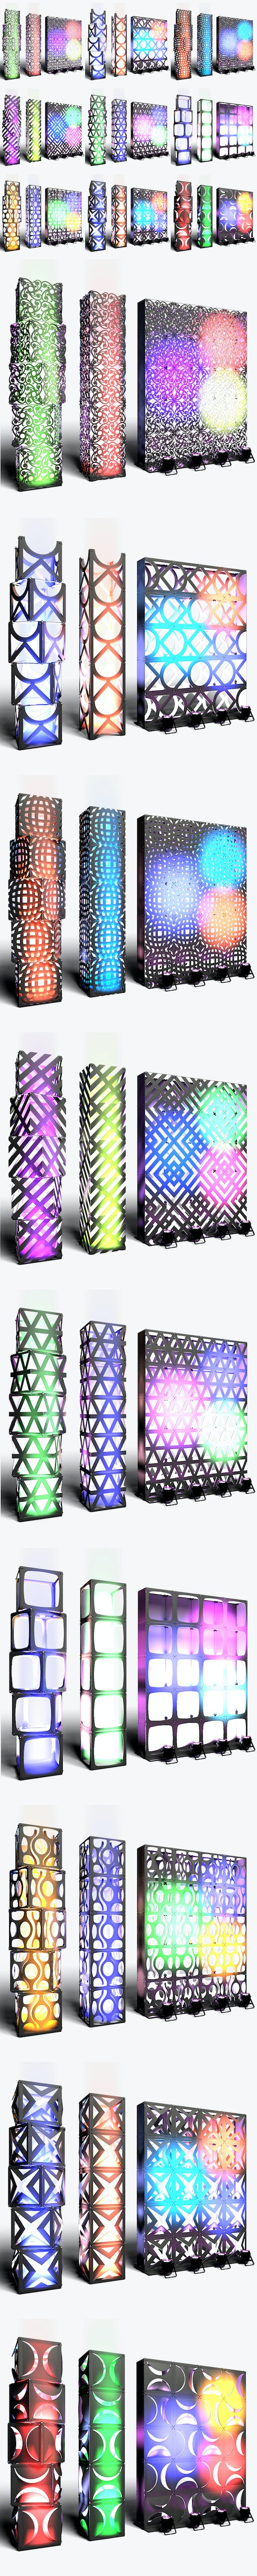 Stage Decor Collection 02 (Modular Wall Column 9 Pieces) - 3DOcean Item for Sale